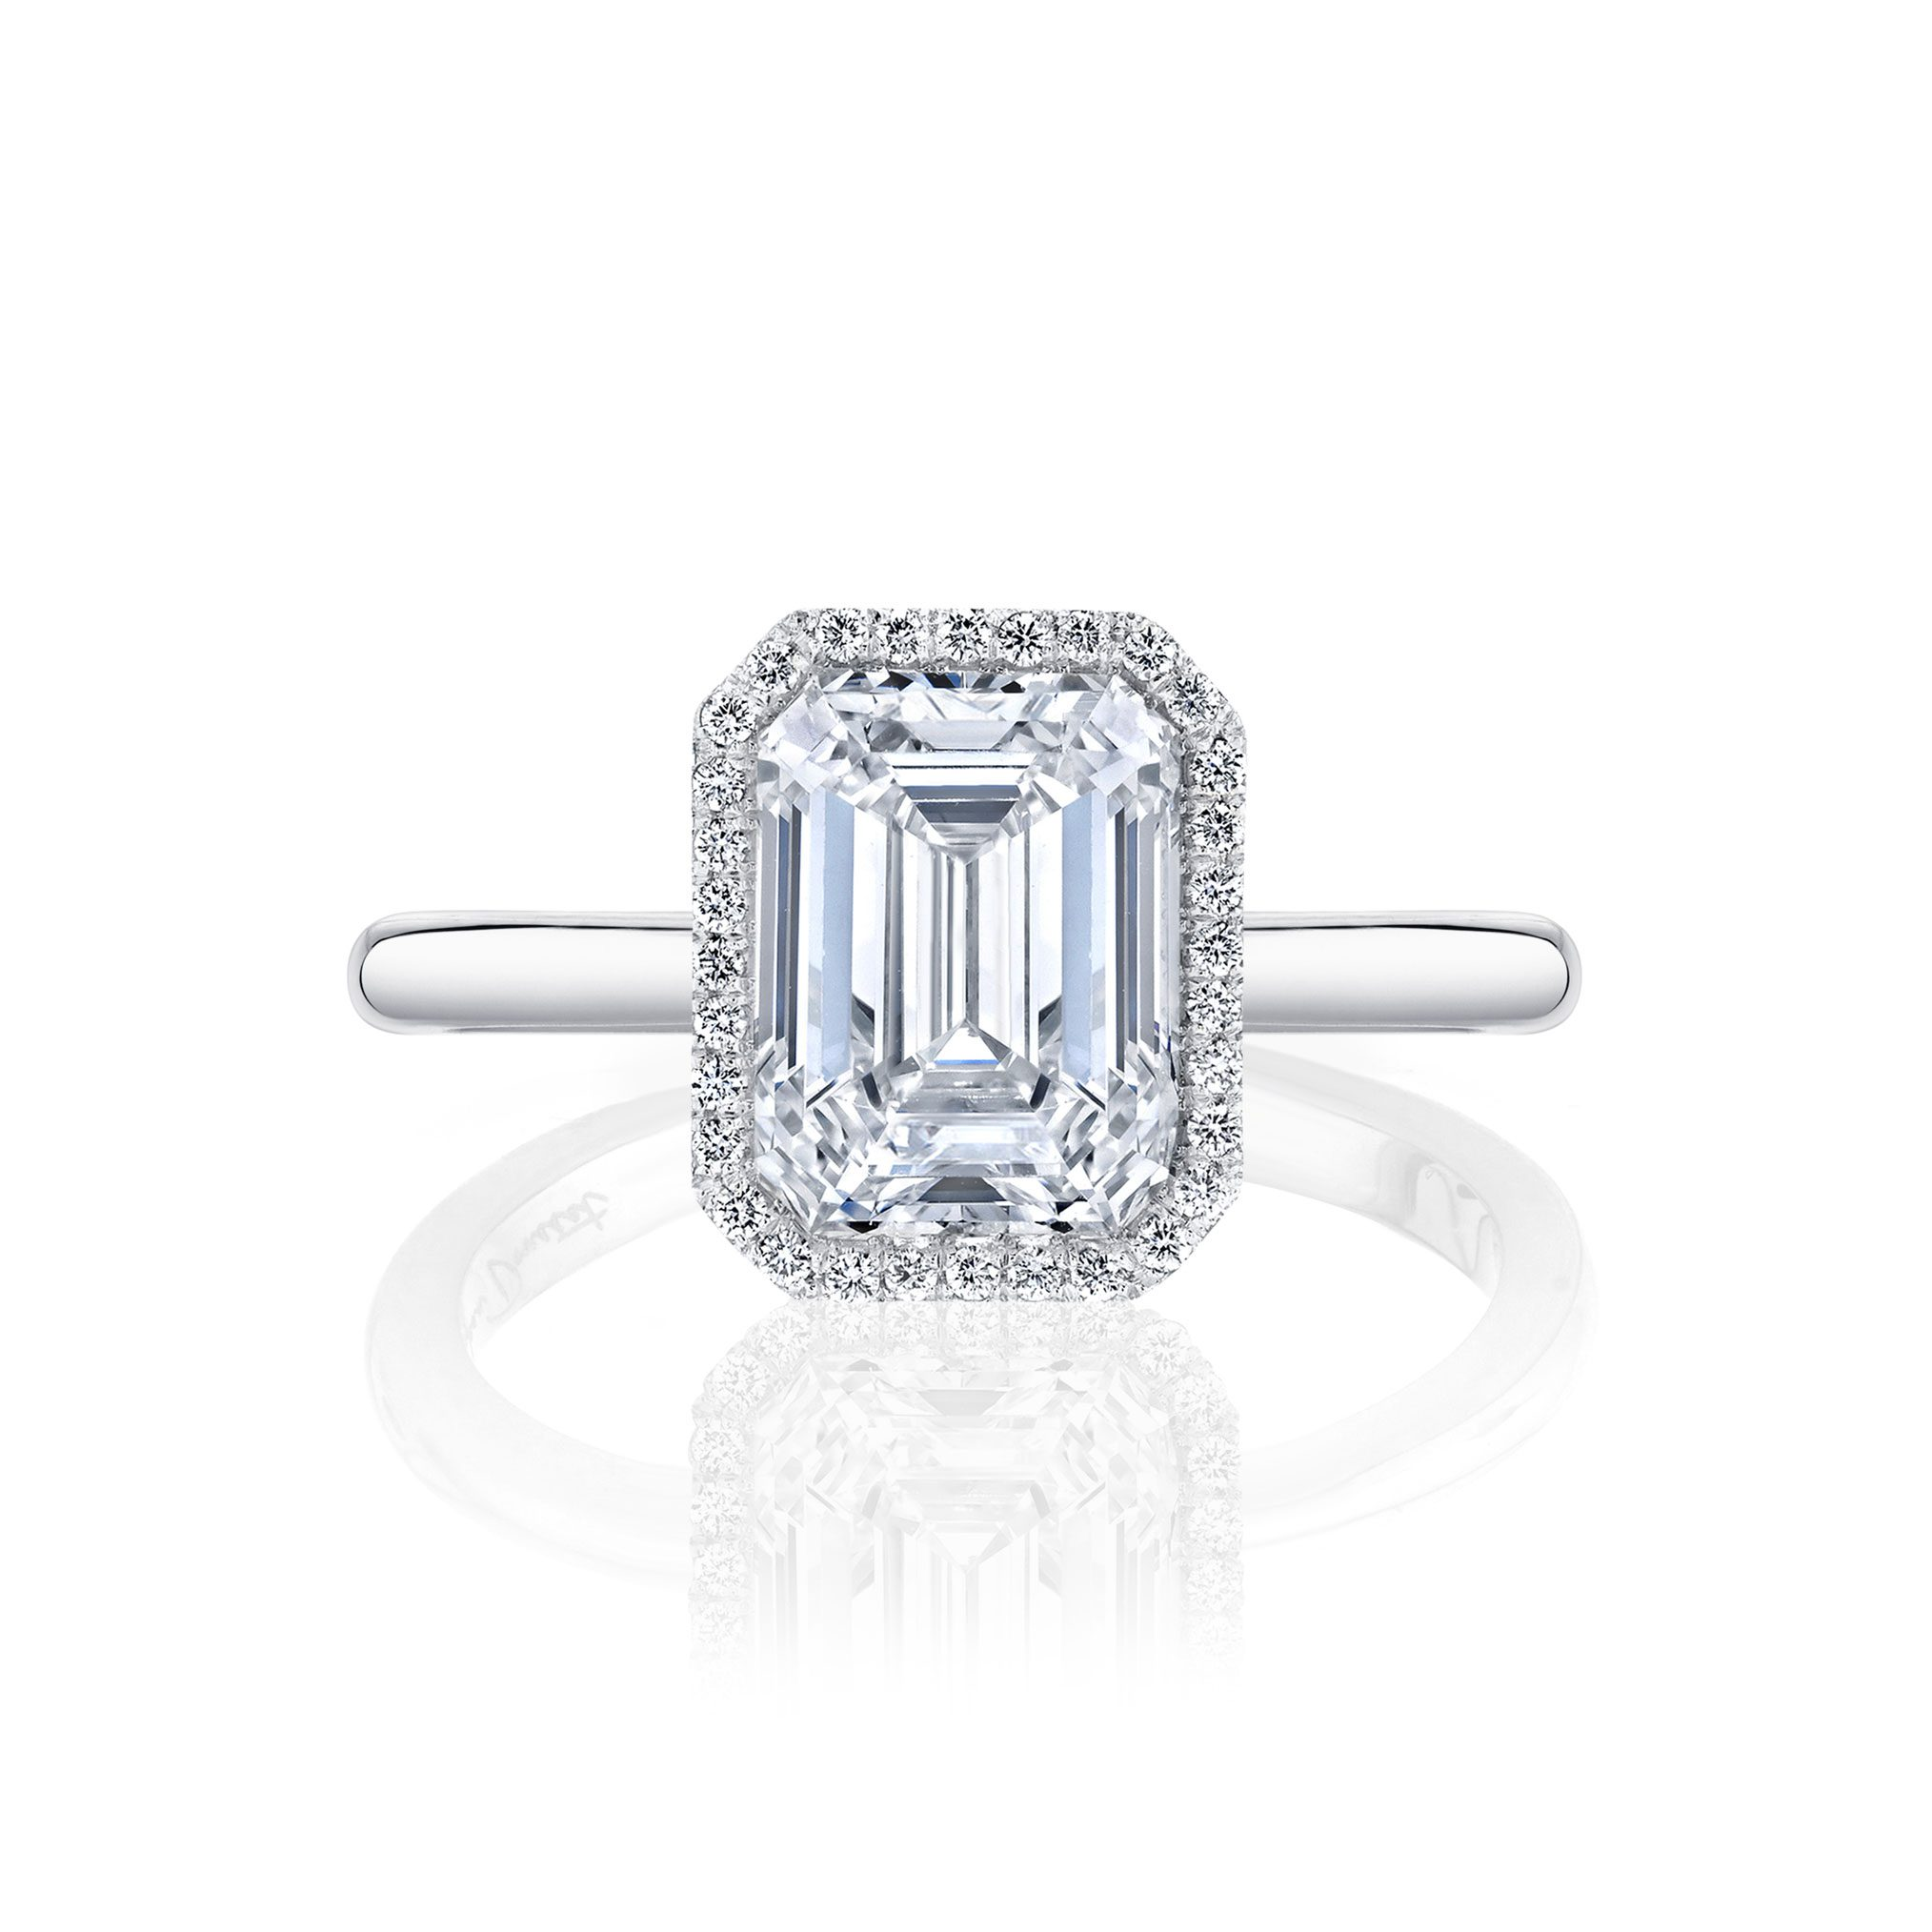 Colette Seamless Halo® Engagement Ring Emerald Cut Ring with white gold band